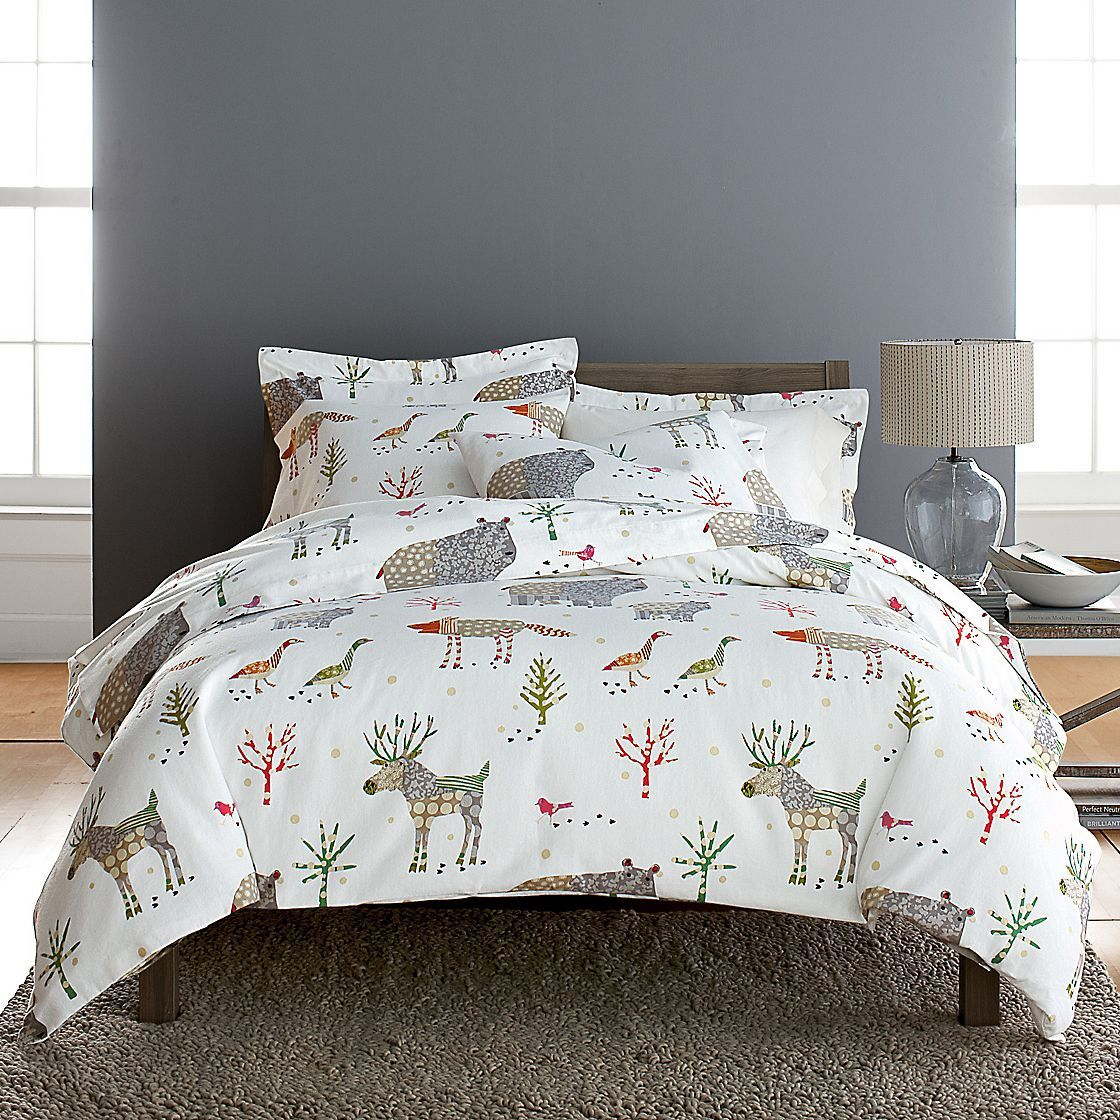 Winter Forest Flannel Comforter Cover / Duvet Cover and